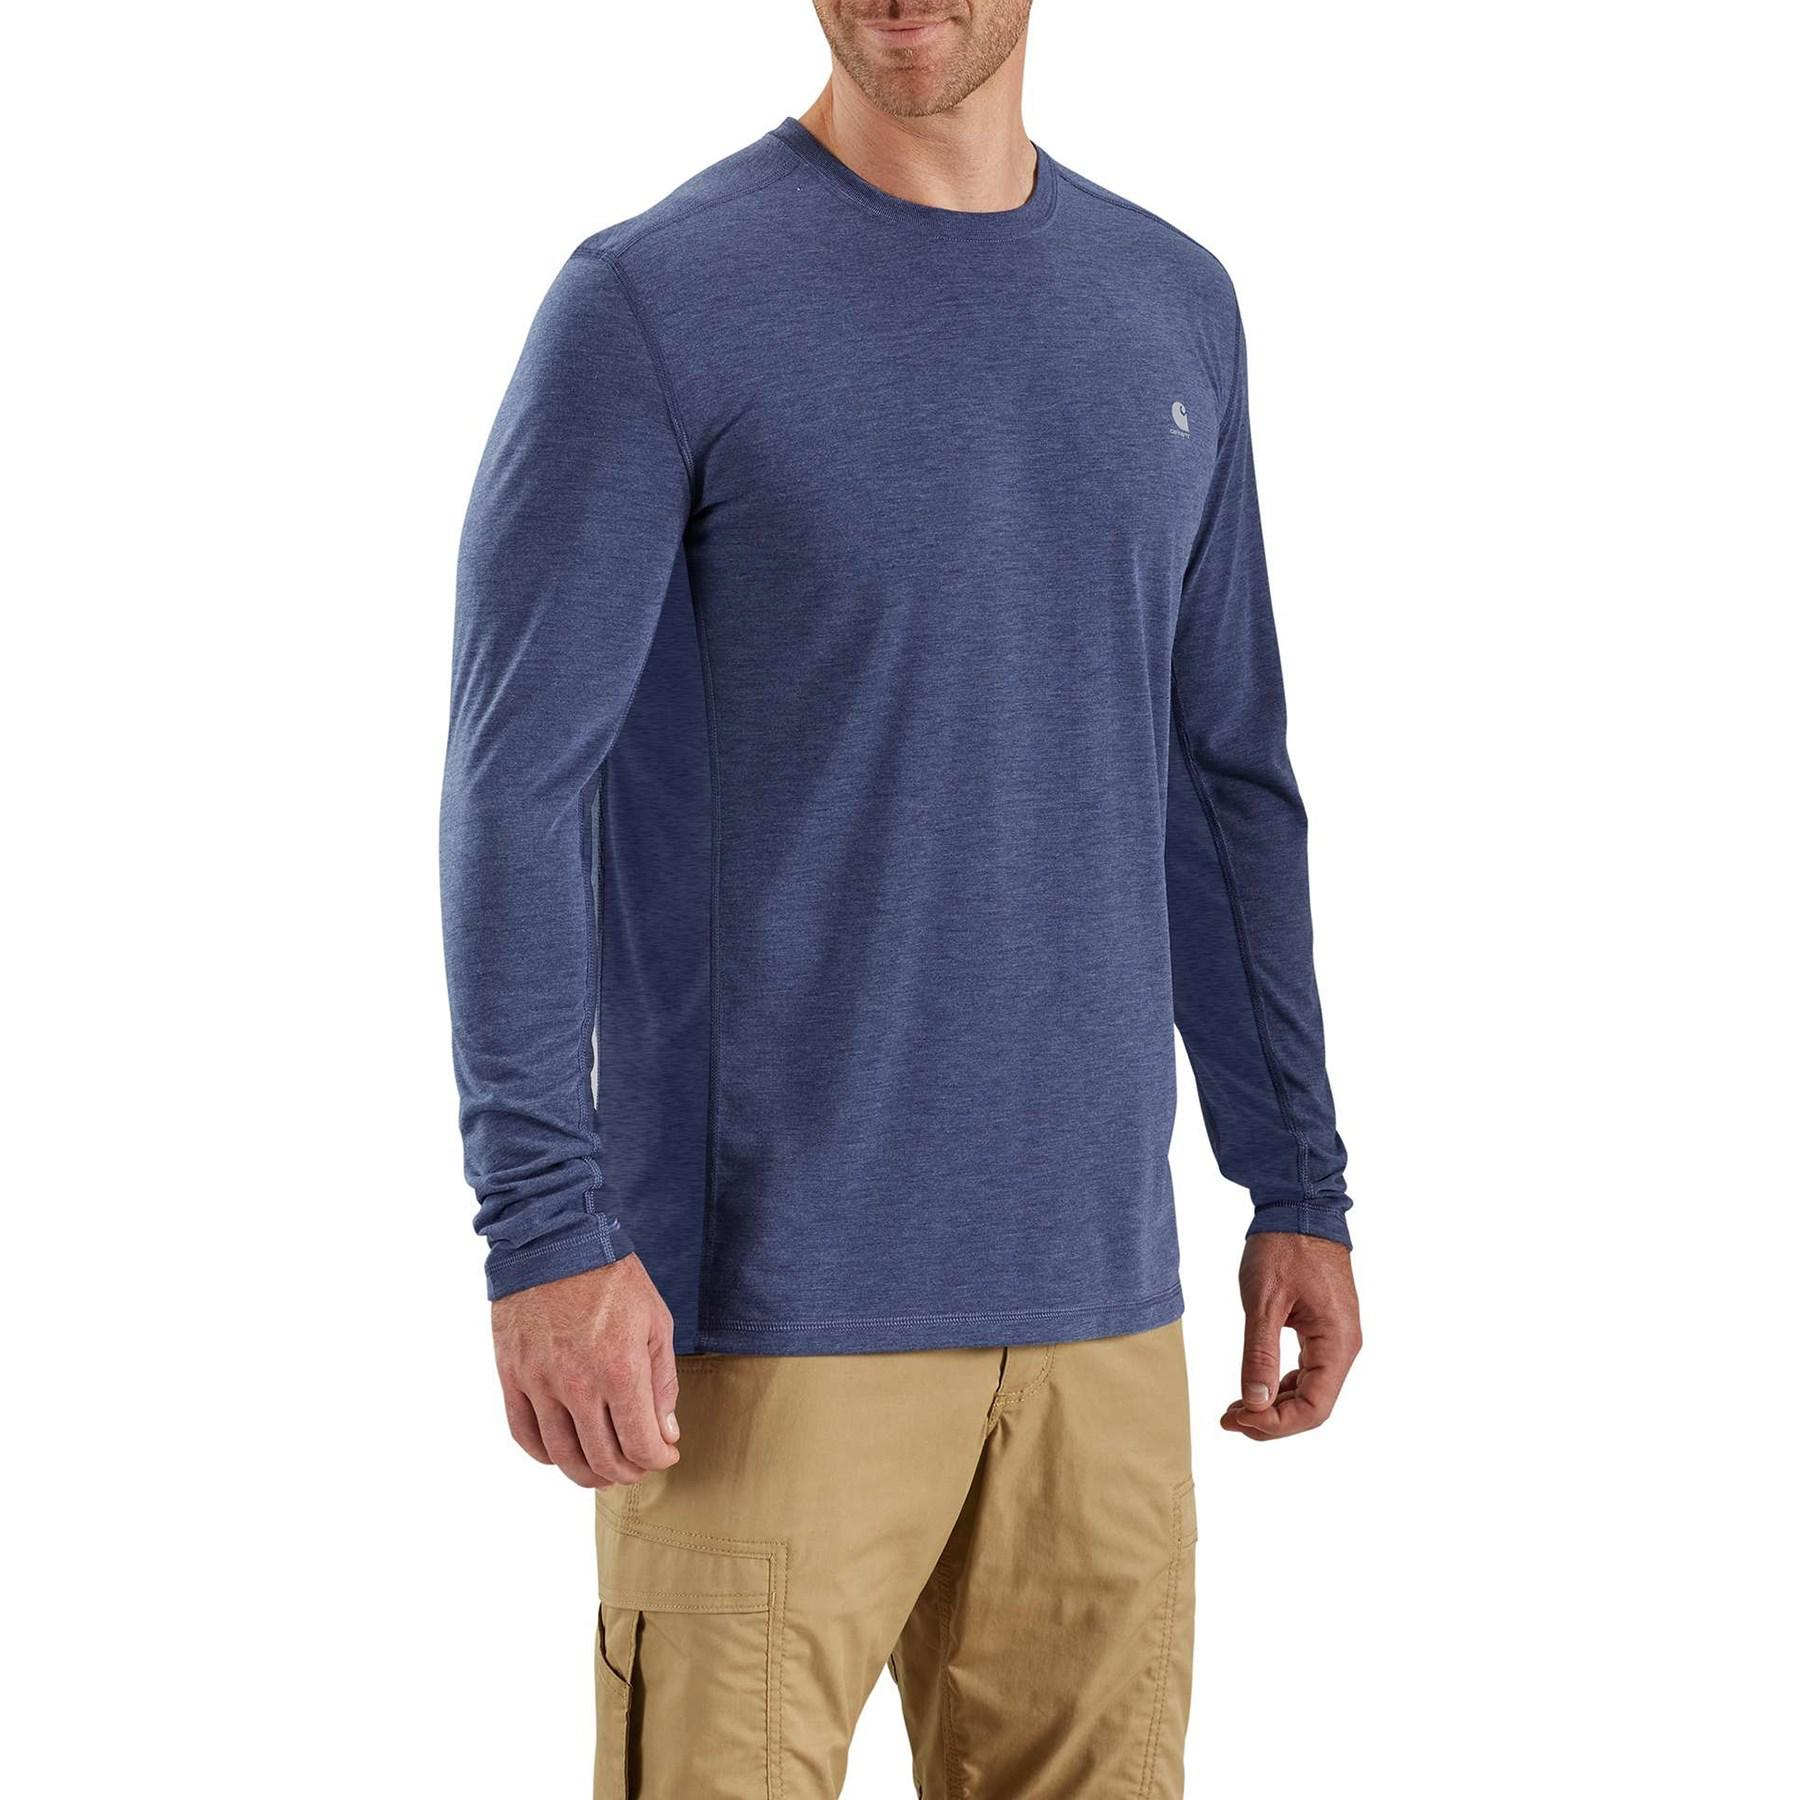 eadfa678985d Lyst - Carhartt Force® Extremes T-shirt in Blue for Men